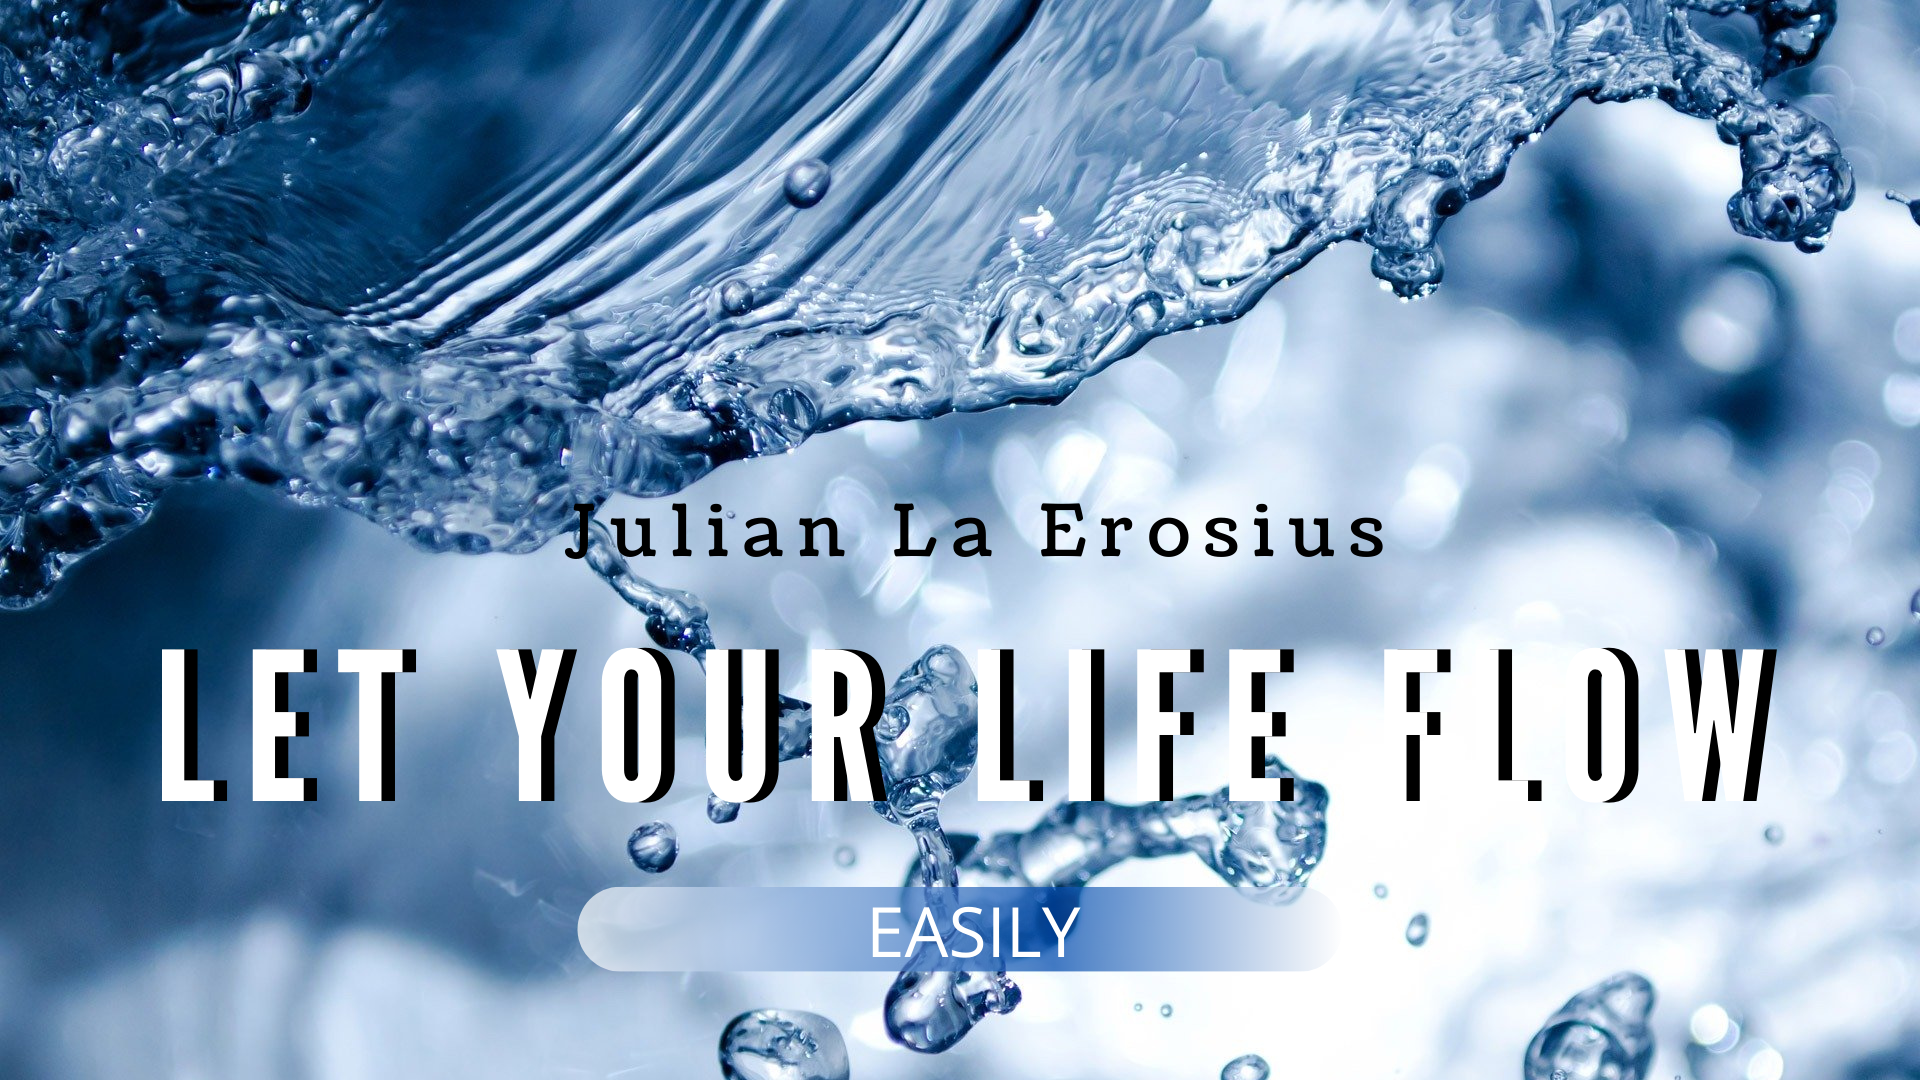 Let your life flow easily